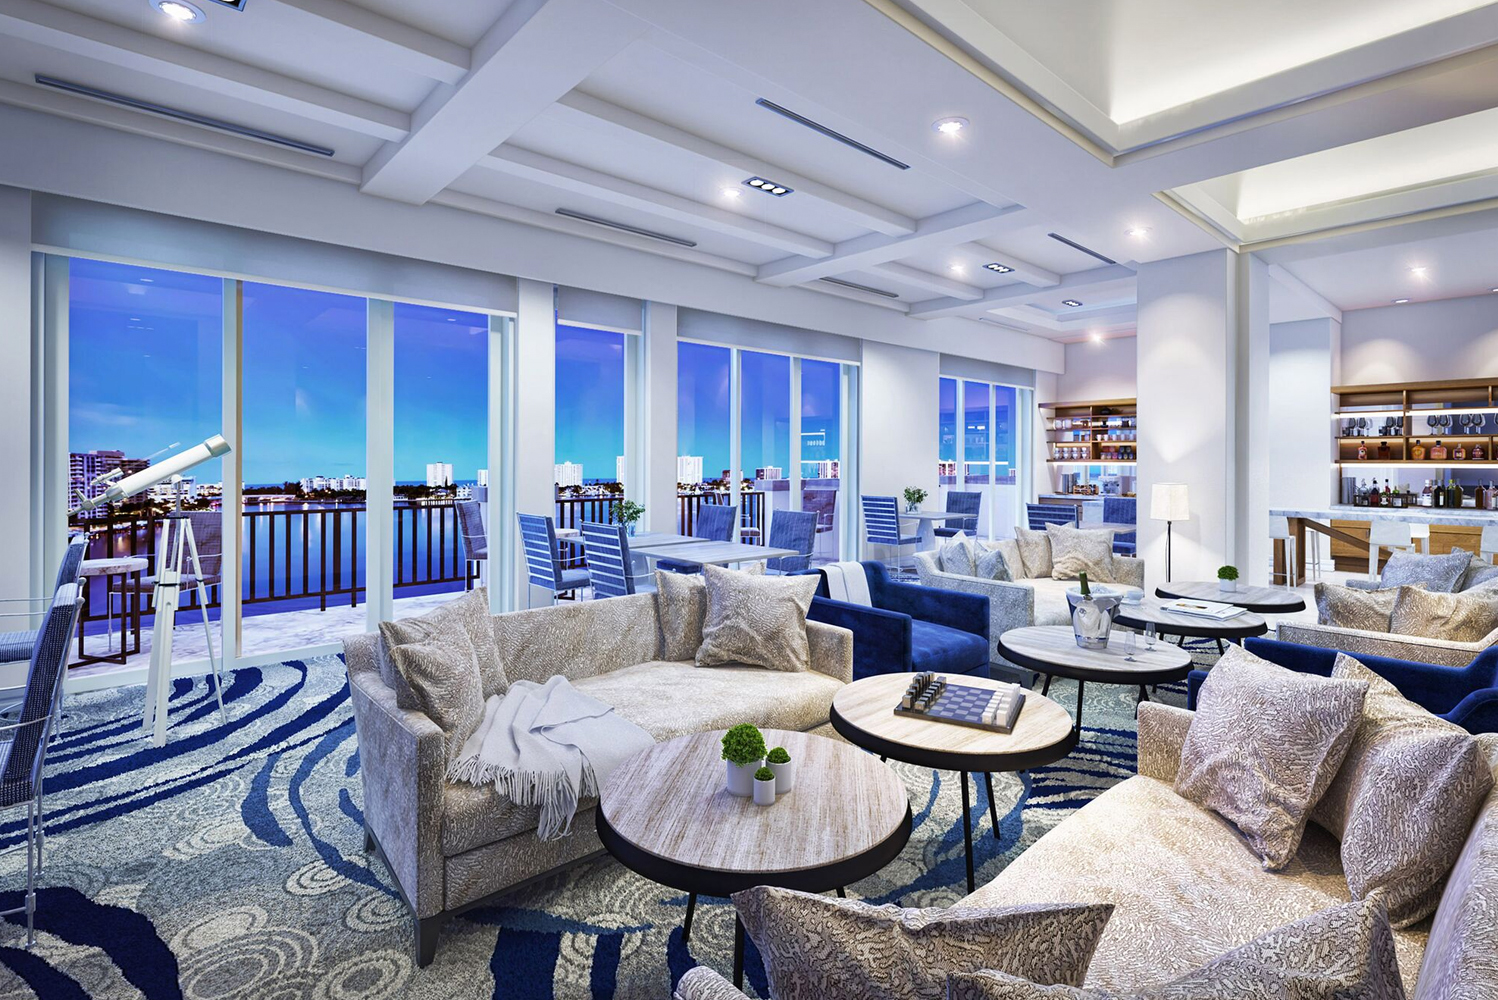 Boca Raton Resort & Club, A Waldorf Astoria Resor is updating the Boca Raton Yacht Club.